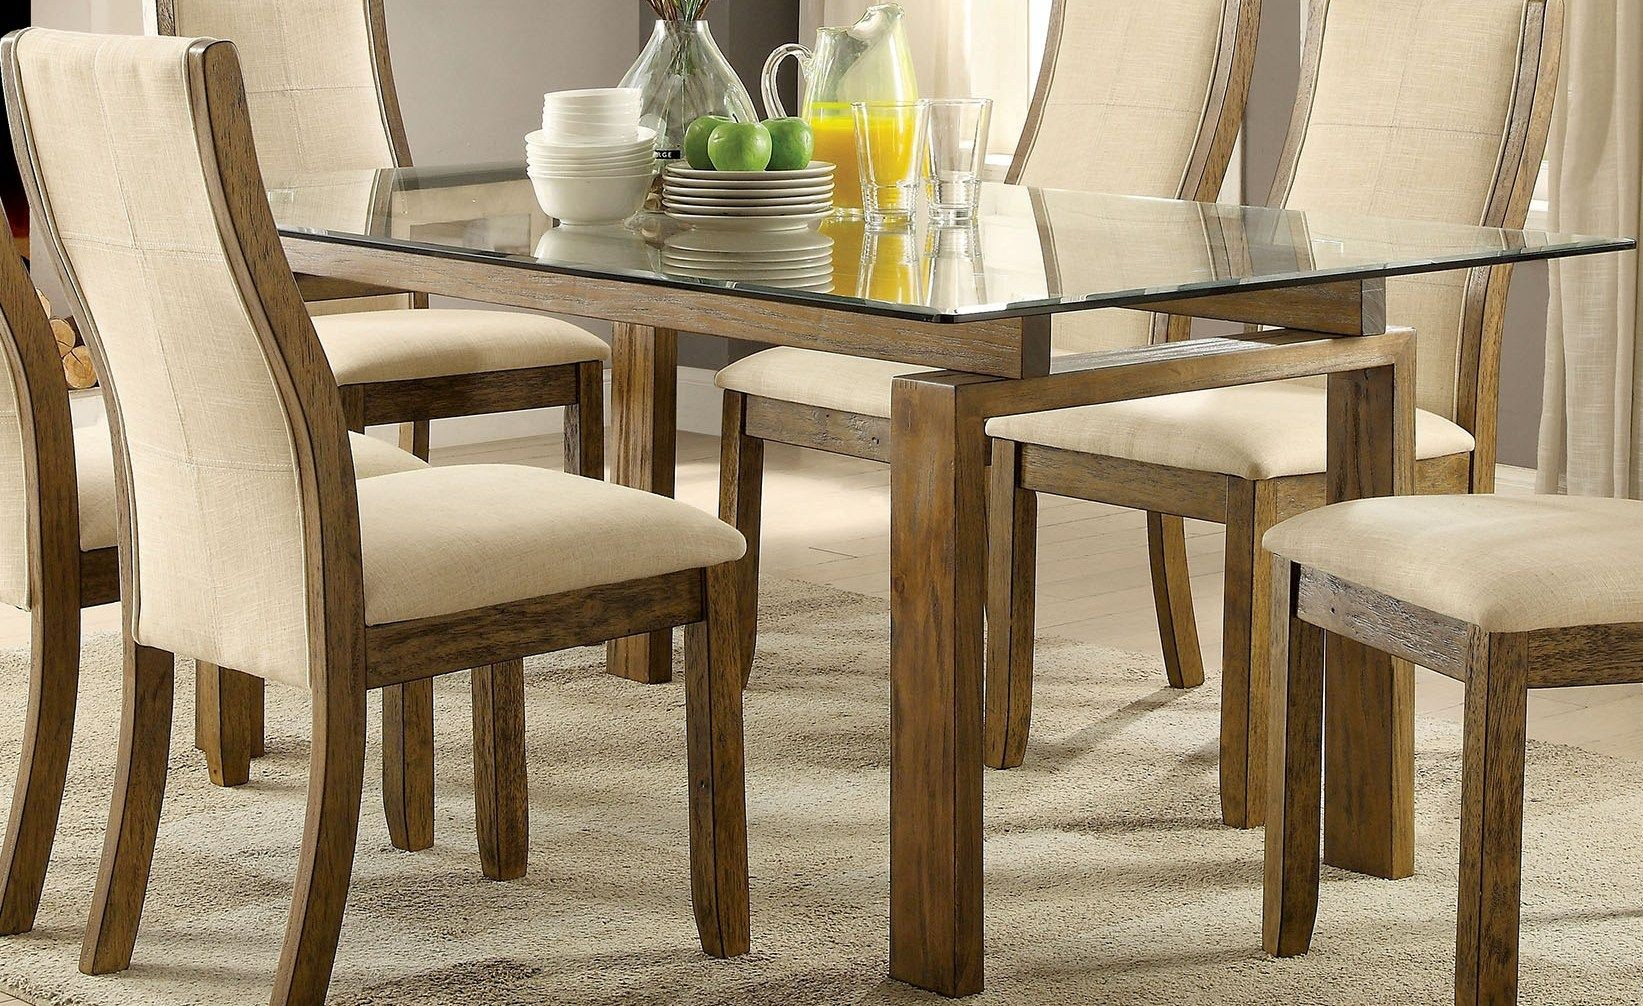 onway oak rectangular glass top dining room set cm3461t table furniture of america. Black Bedroom Furniture Sets. Home Design Ideas